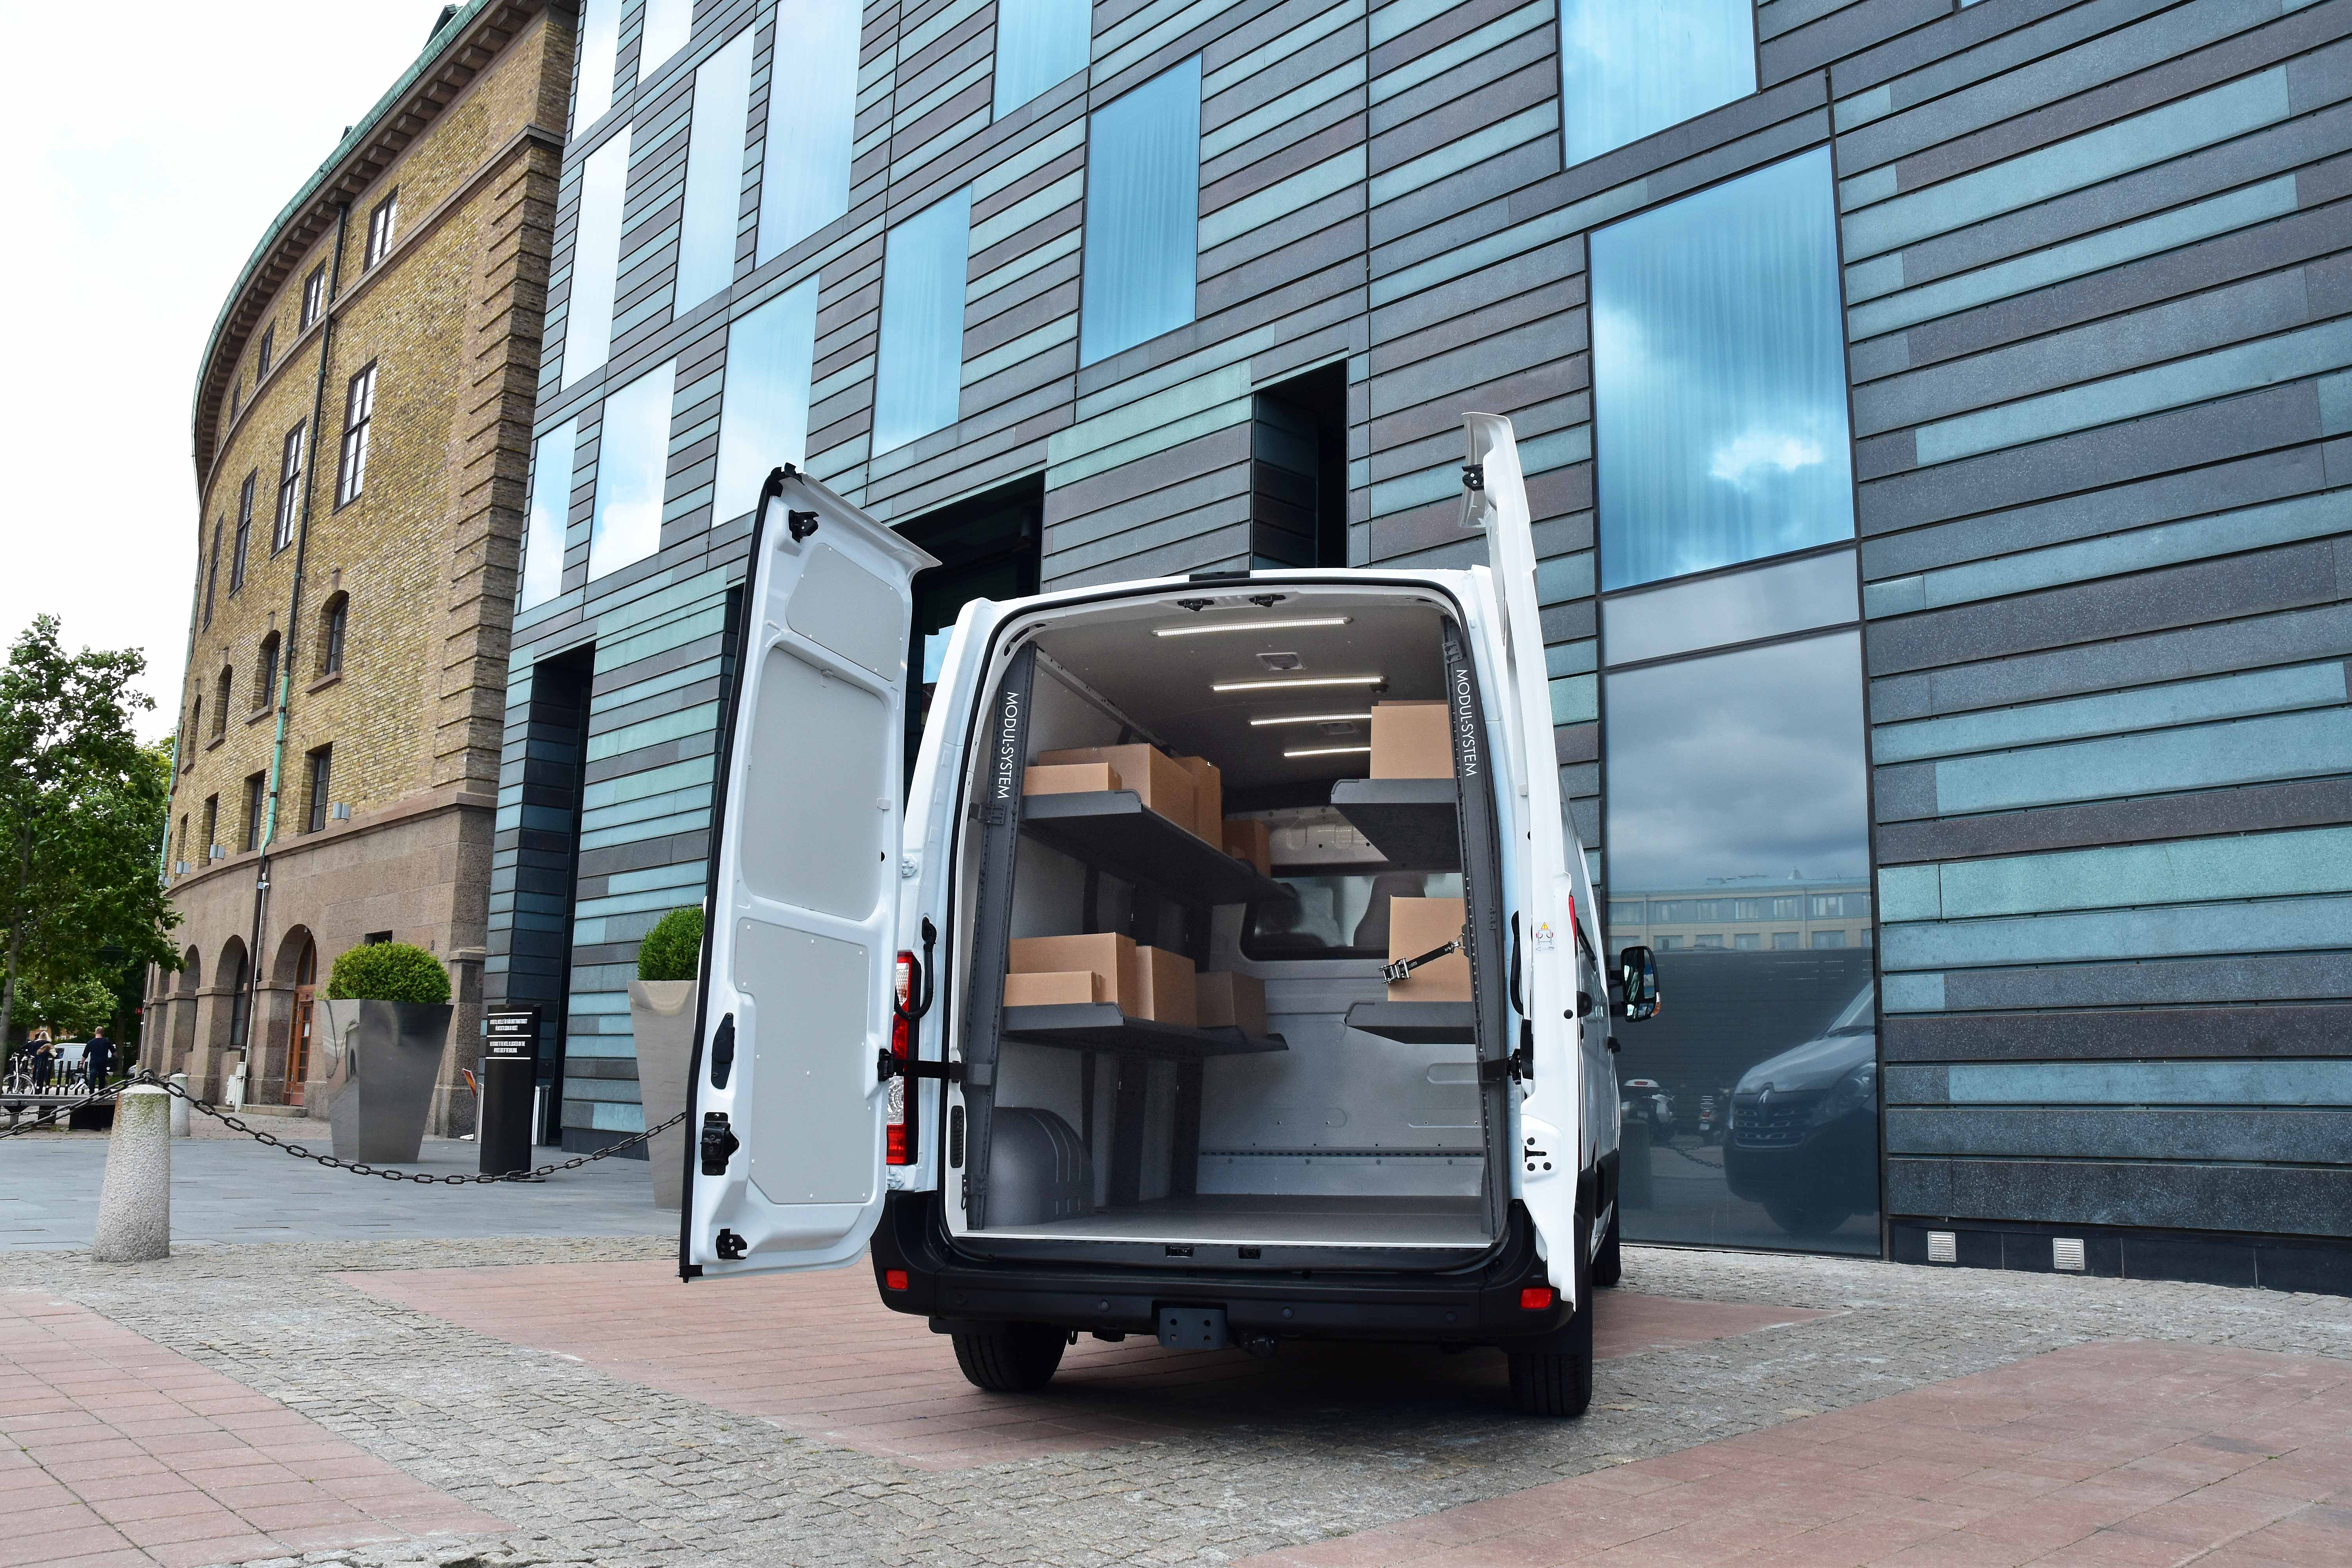 Van fitted out with modul-express van shelving holding delivery boxes